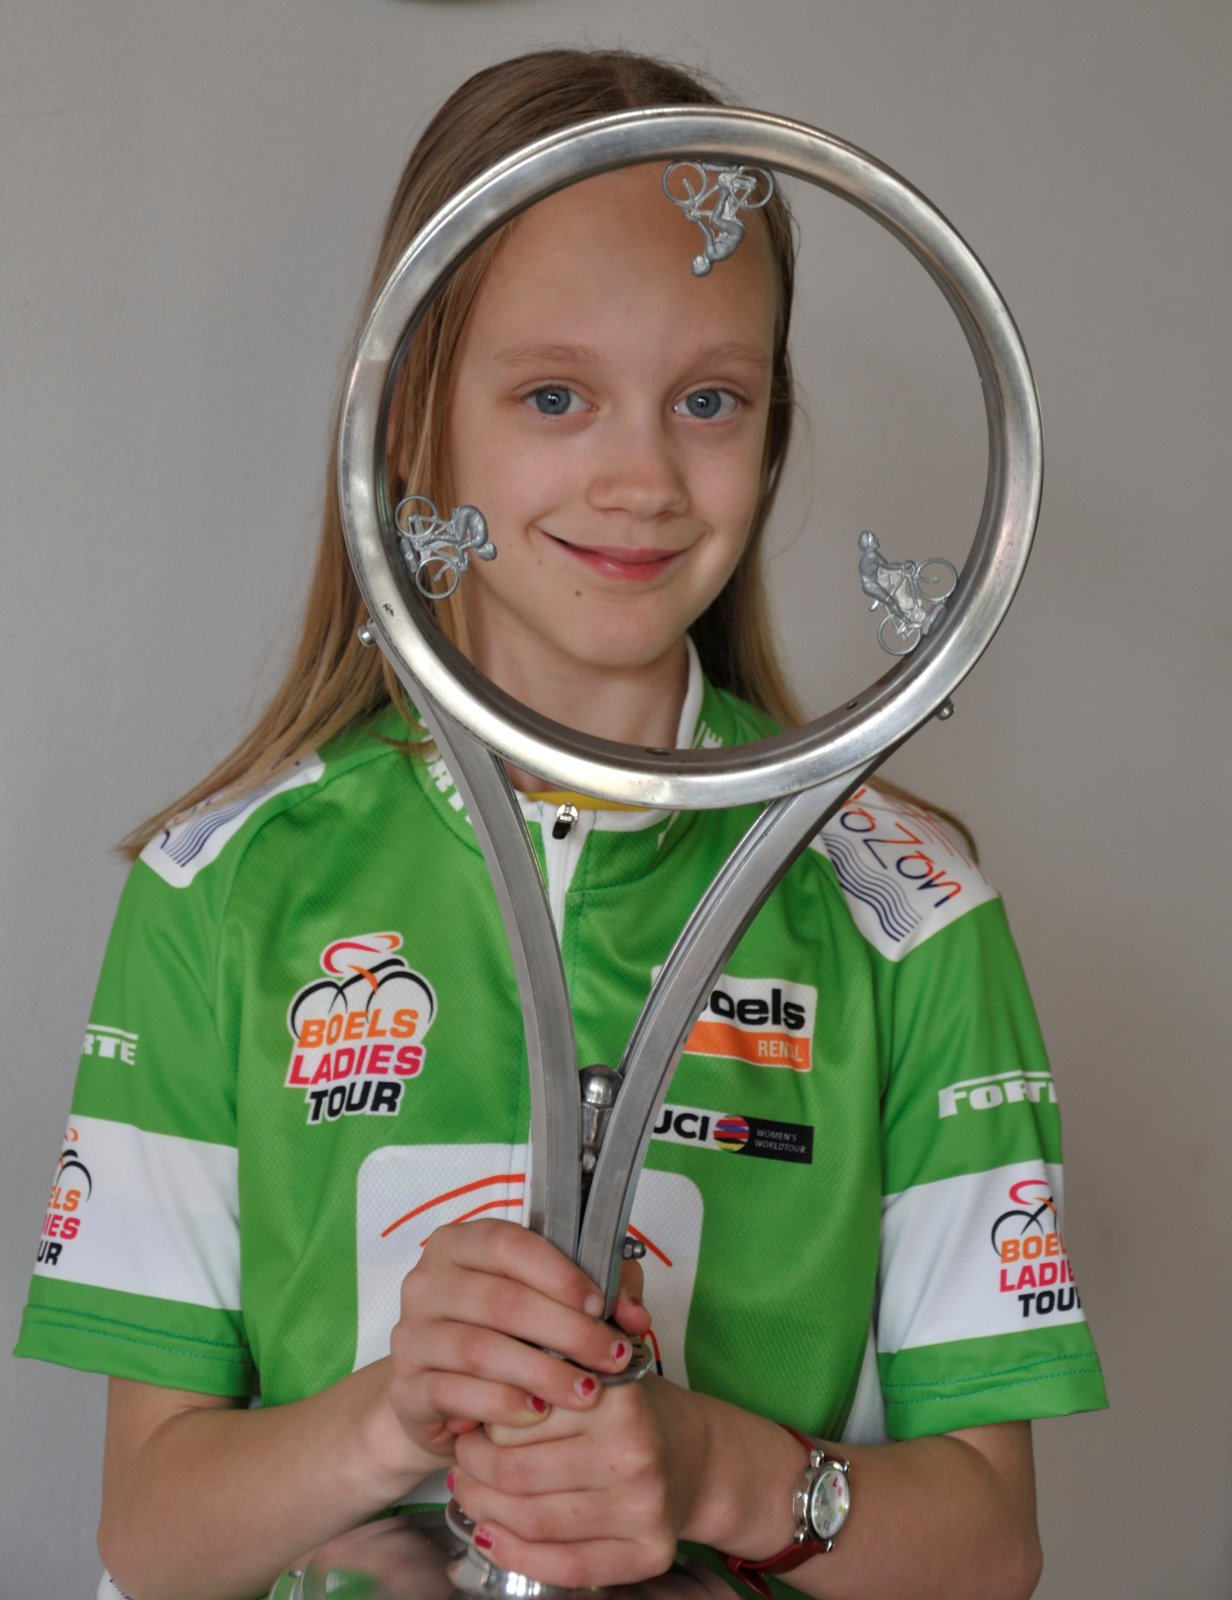 Upcle Our World Cycling Trophy Boels Ladies Tour 2020 Made By Decreatievelink (2)